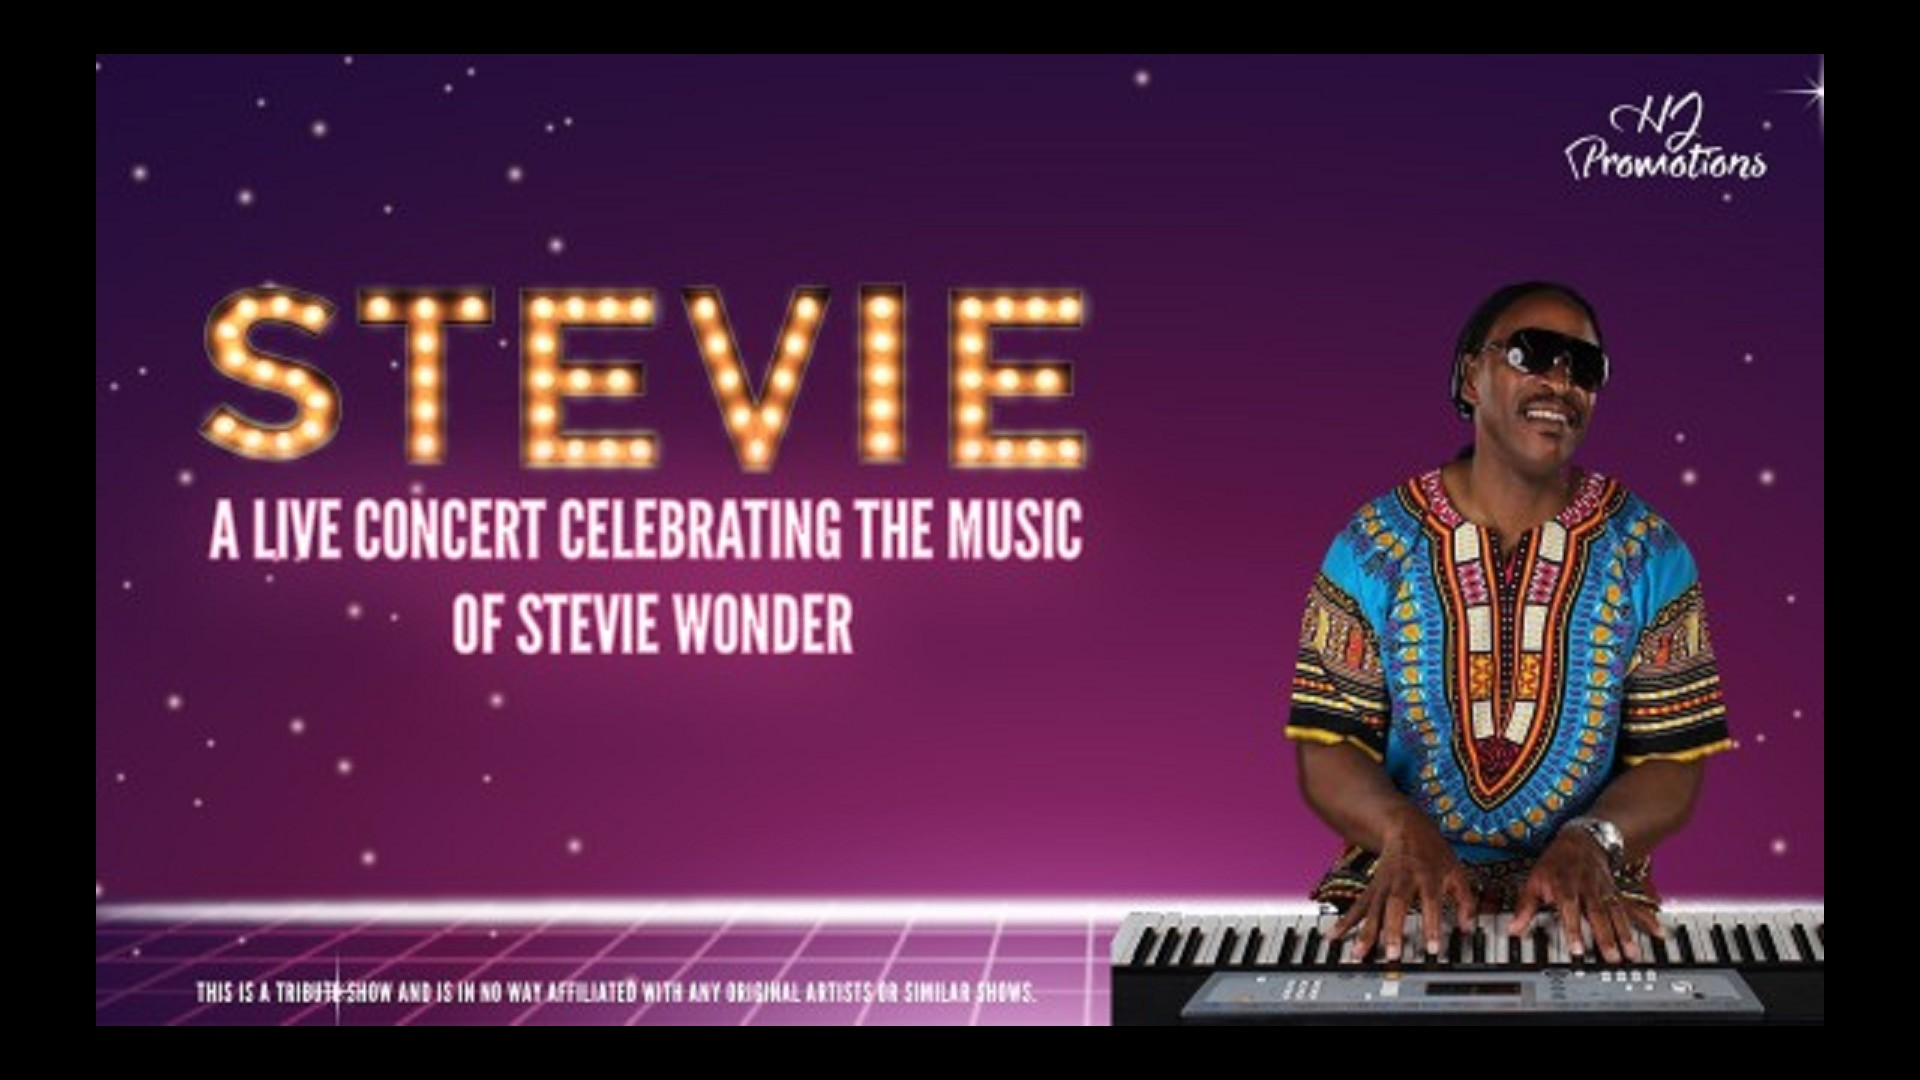 STEVIE: A Live Concert Celebrating The Music of Stevie Wonder